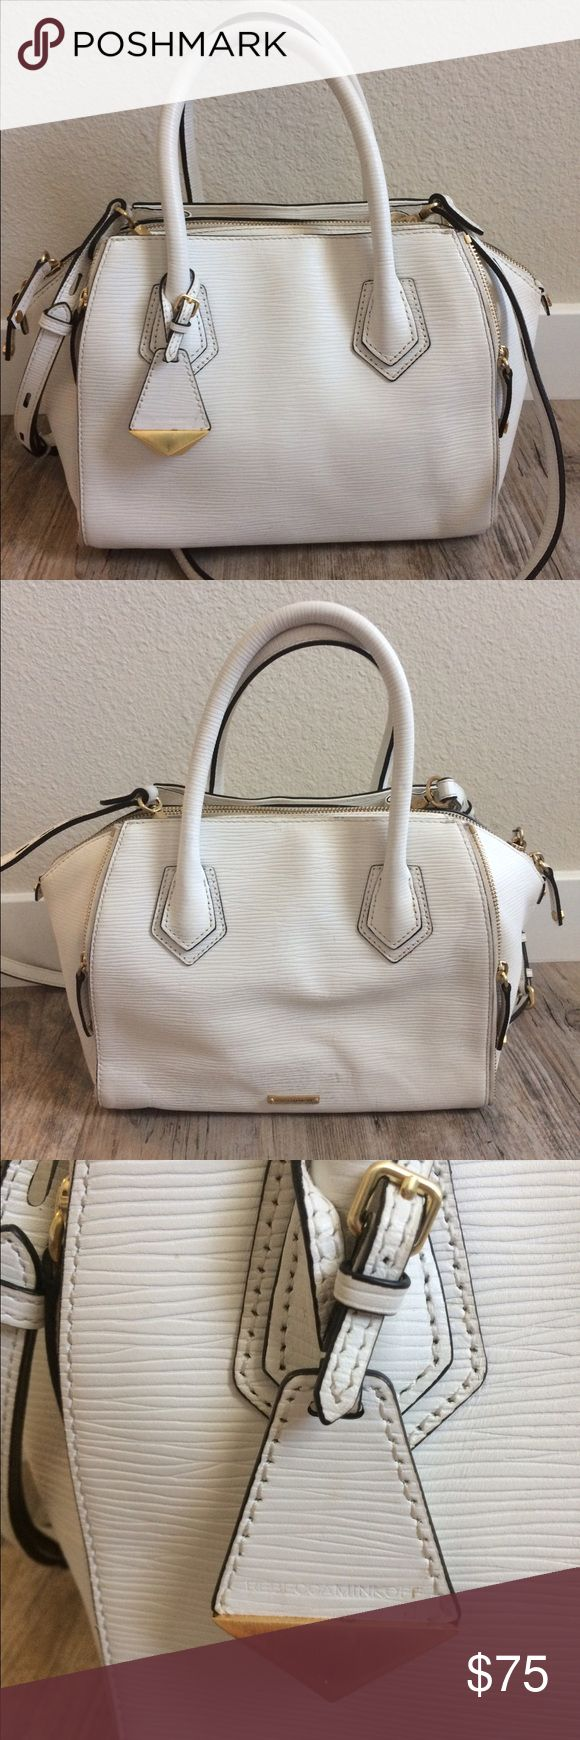 """$395 Rebecca Minkoff 'Mini Perry' White Satchel White, waved embossed leather Removable shoulder straps Main zip closure Side zips to extend Magnetic side pockets Measures approximately: total length across 13"""" inside depth 6""""  Does have some signs of wear- one side has some light marks throughout, perhaps from rubbing on denim. Some light marks on the sides and bottom and on corner. One of the foot protectors broke off/missing. Refer to photos. Has not been cleaned/treated. Some light wear…"""